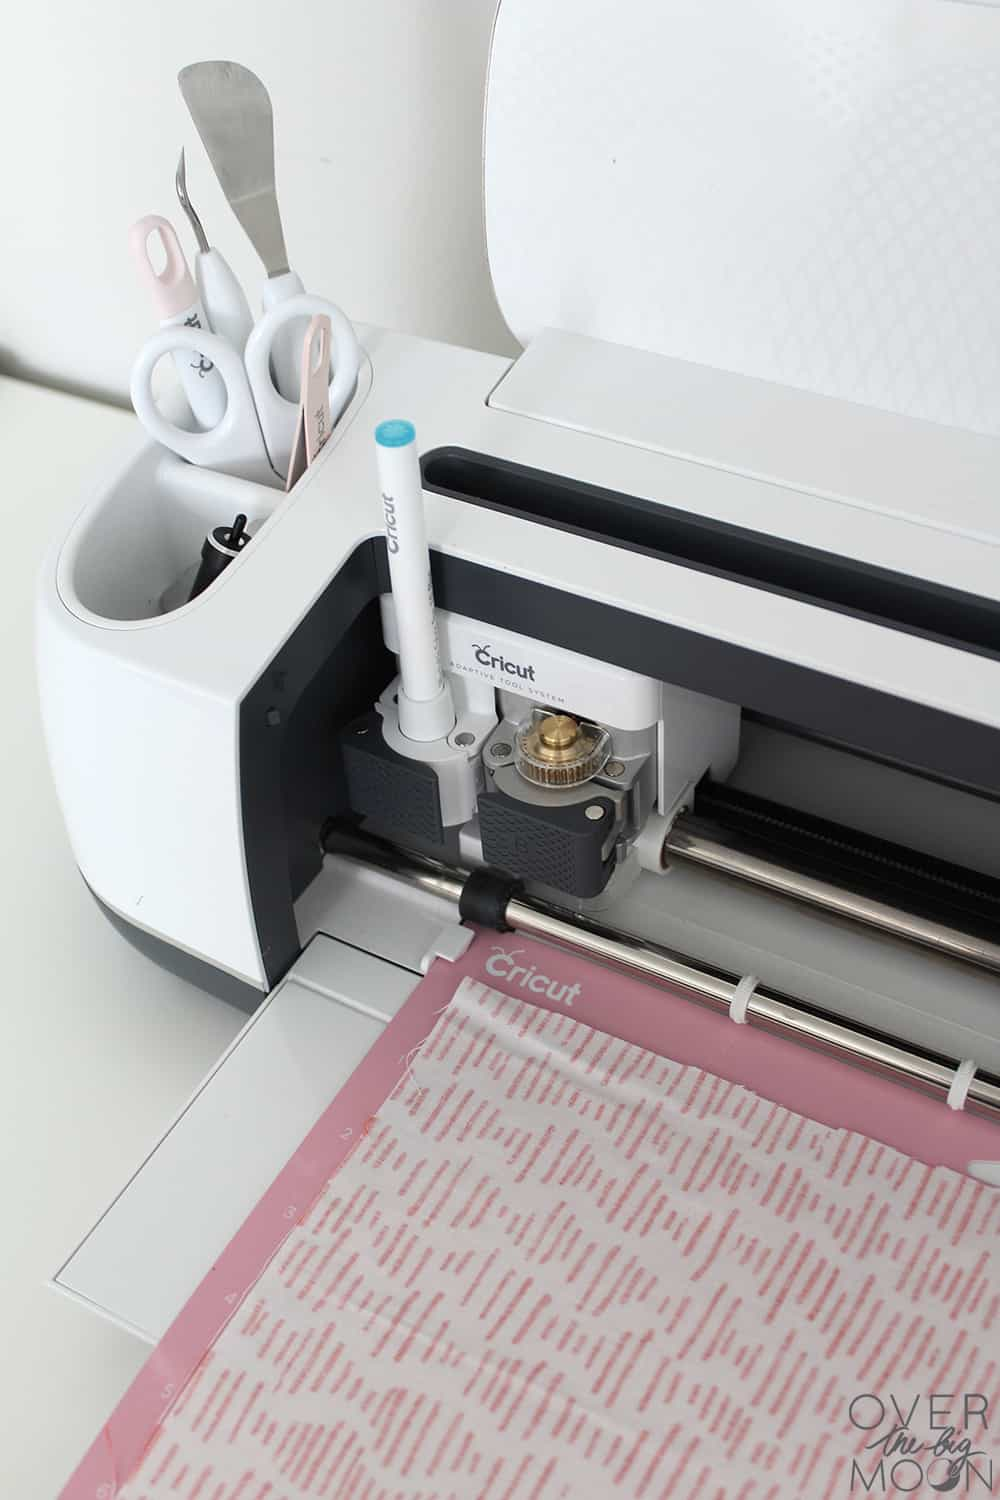 The Cricut Maker can making sewing 10x easier by cutting the fabric for you! Come see these Soft Baby Blocks! From www.overthebigmoon.com